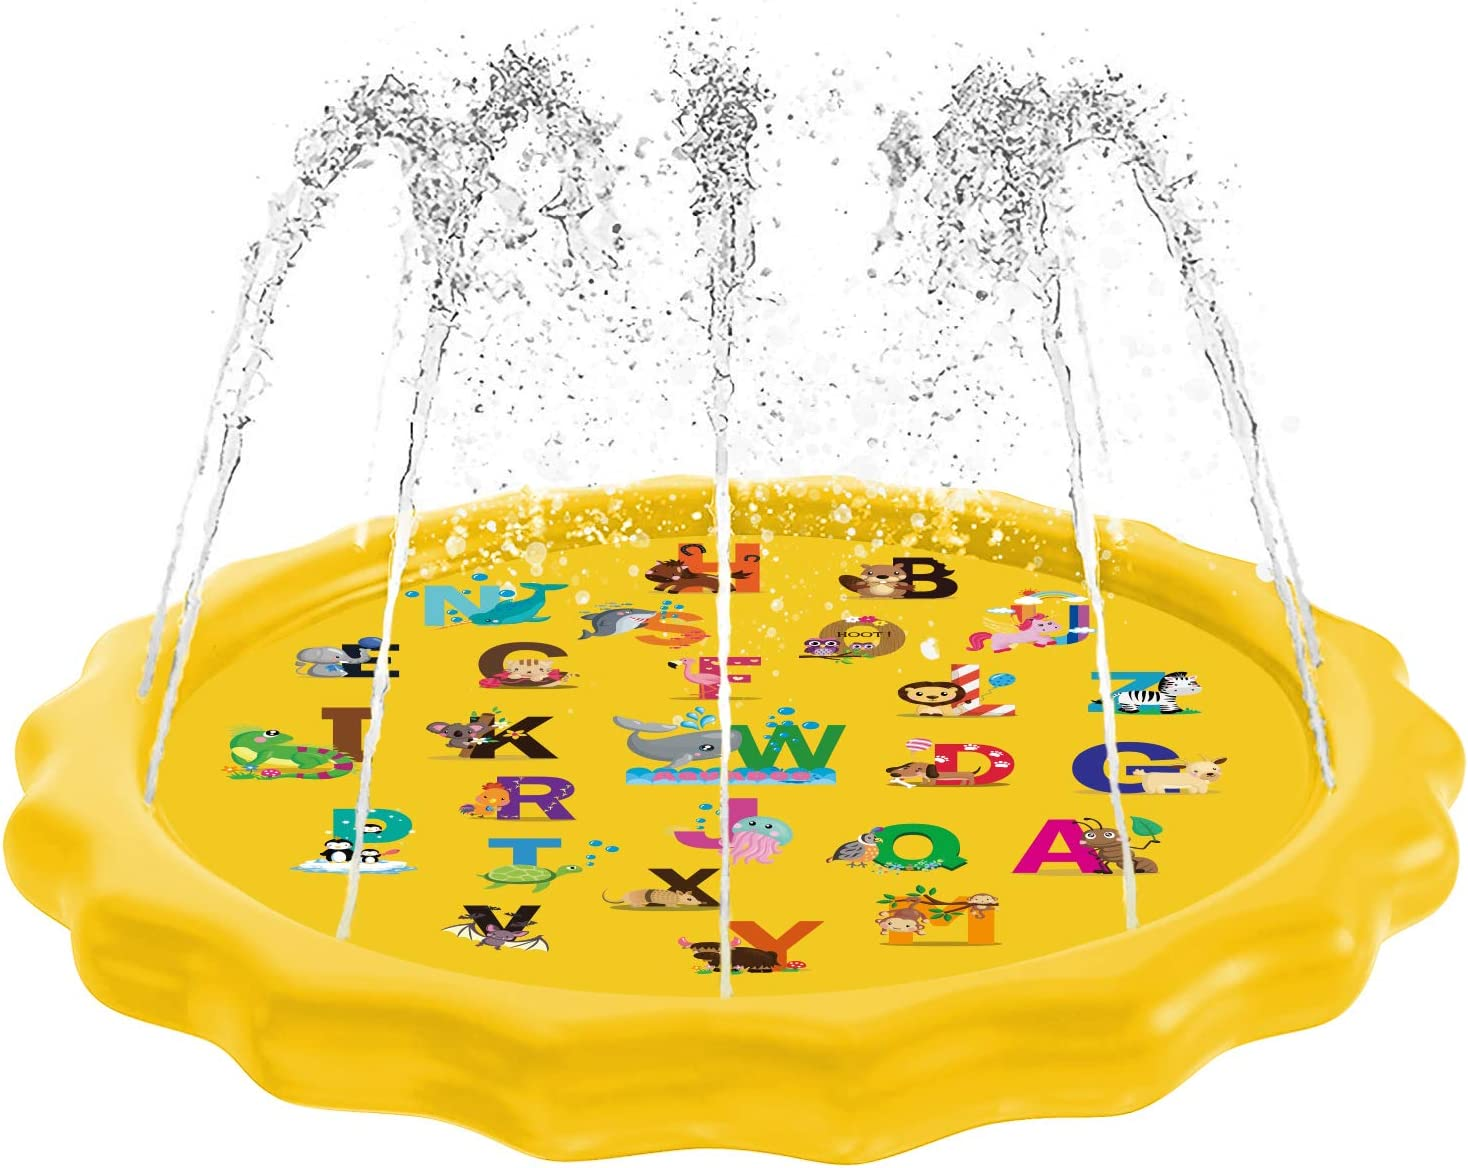 """Aquadoo Sprinkler for Kids, Splash Pad, and Swimming Pool for Kids – Children's Sprinkler Pool, 68'' Inflatable Water Toys """"from A to Z"""" Outdoor Swimming Pool for Babies and Toddlers: Toys & Games"""